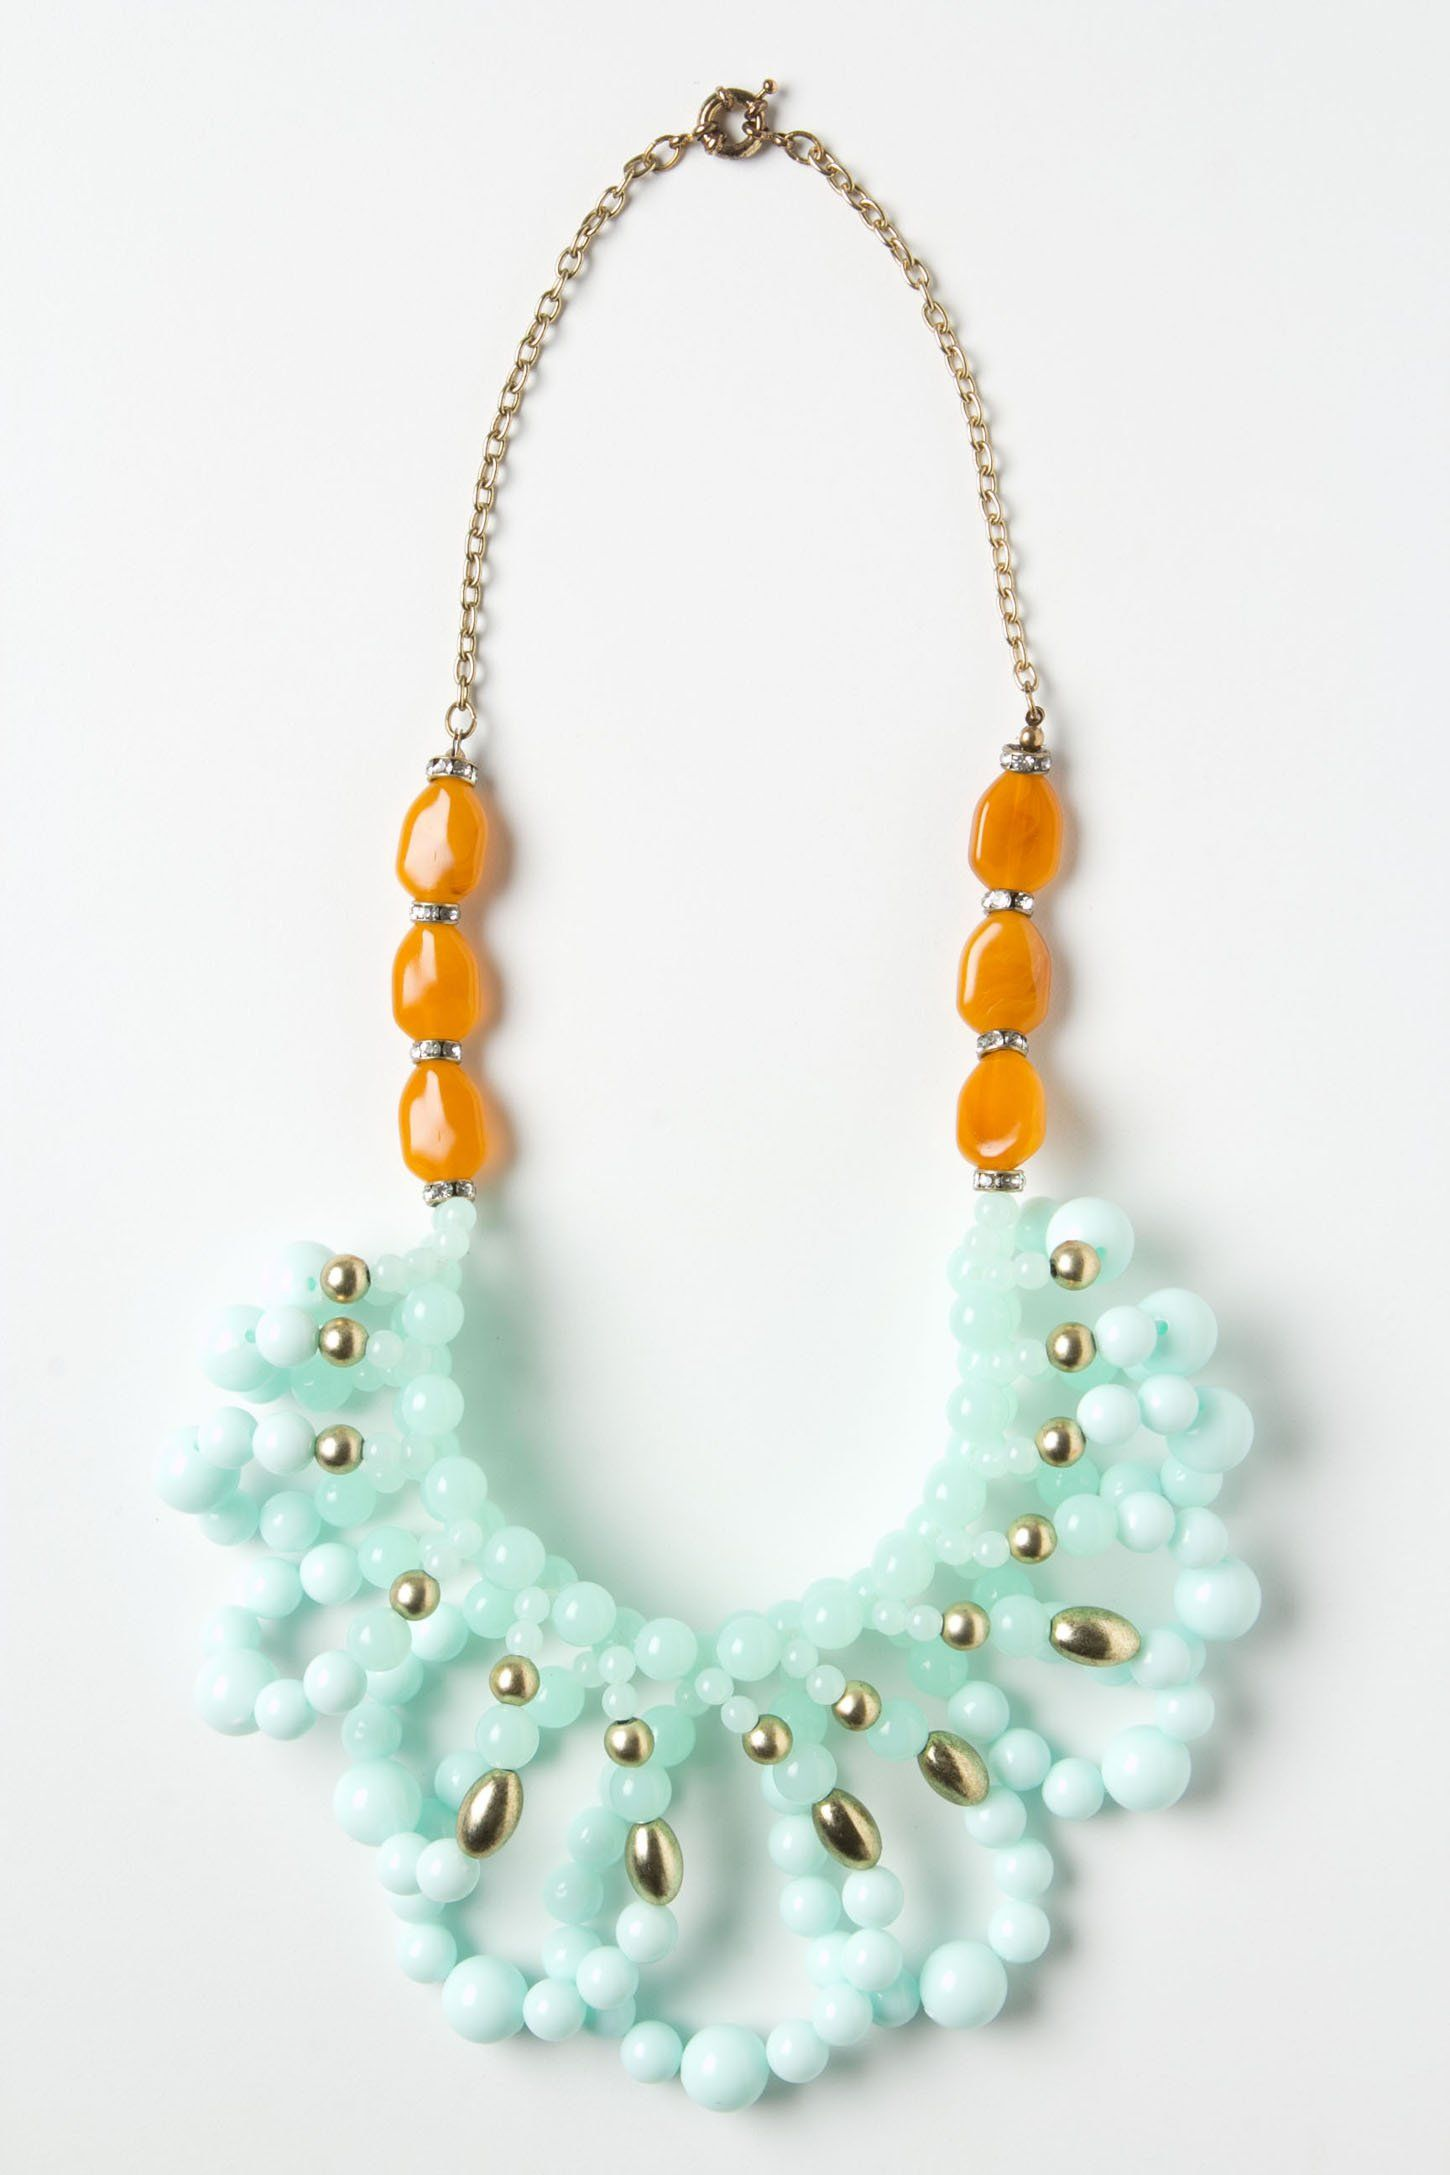 Caleta Necklace via Anthropologie